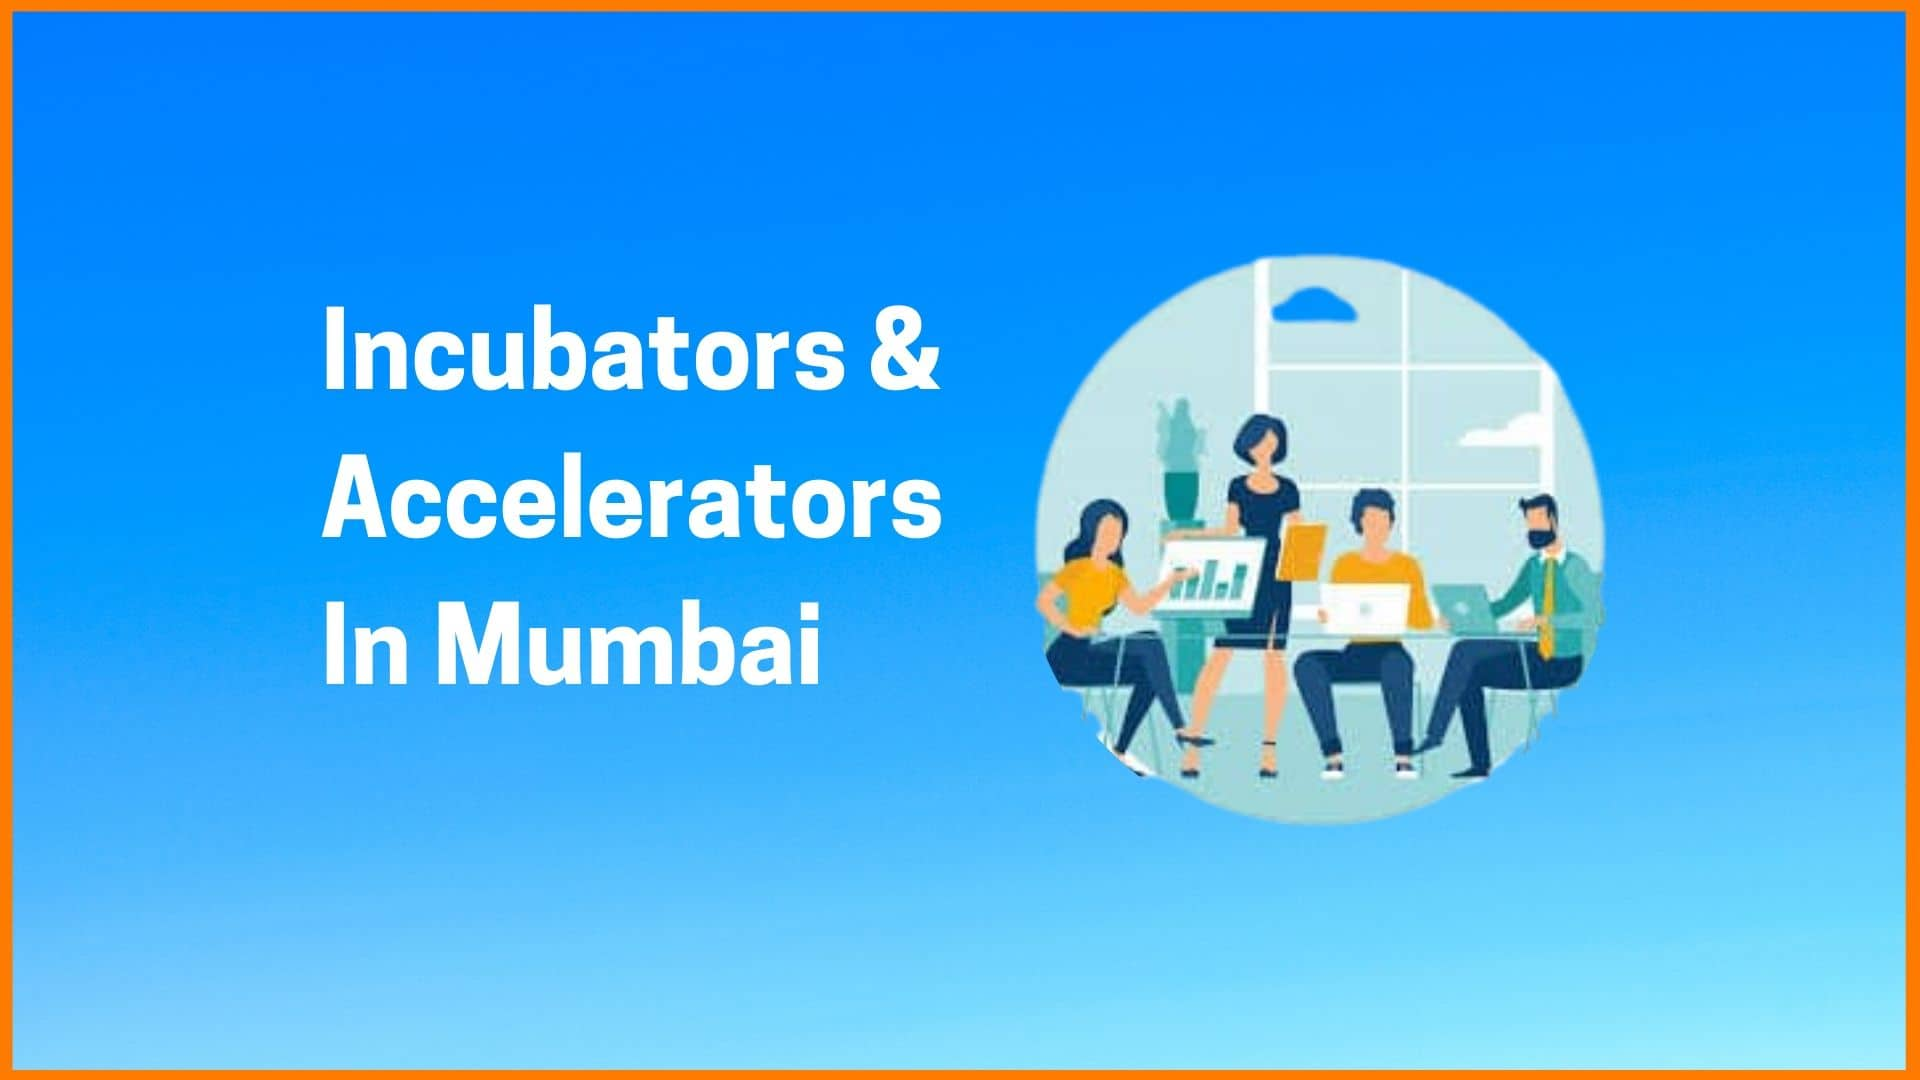 Top 21 Incubators & Accelerators in Mumbai